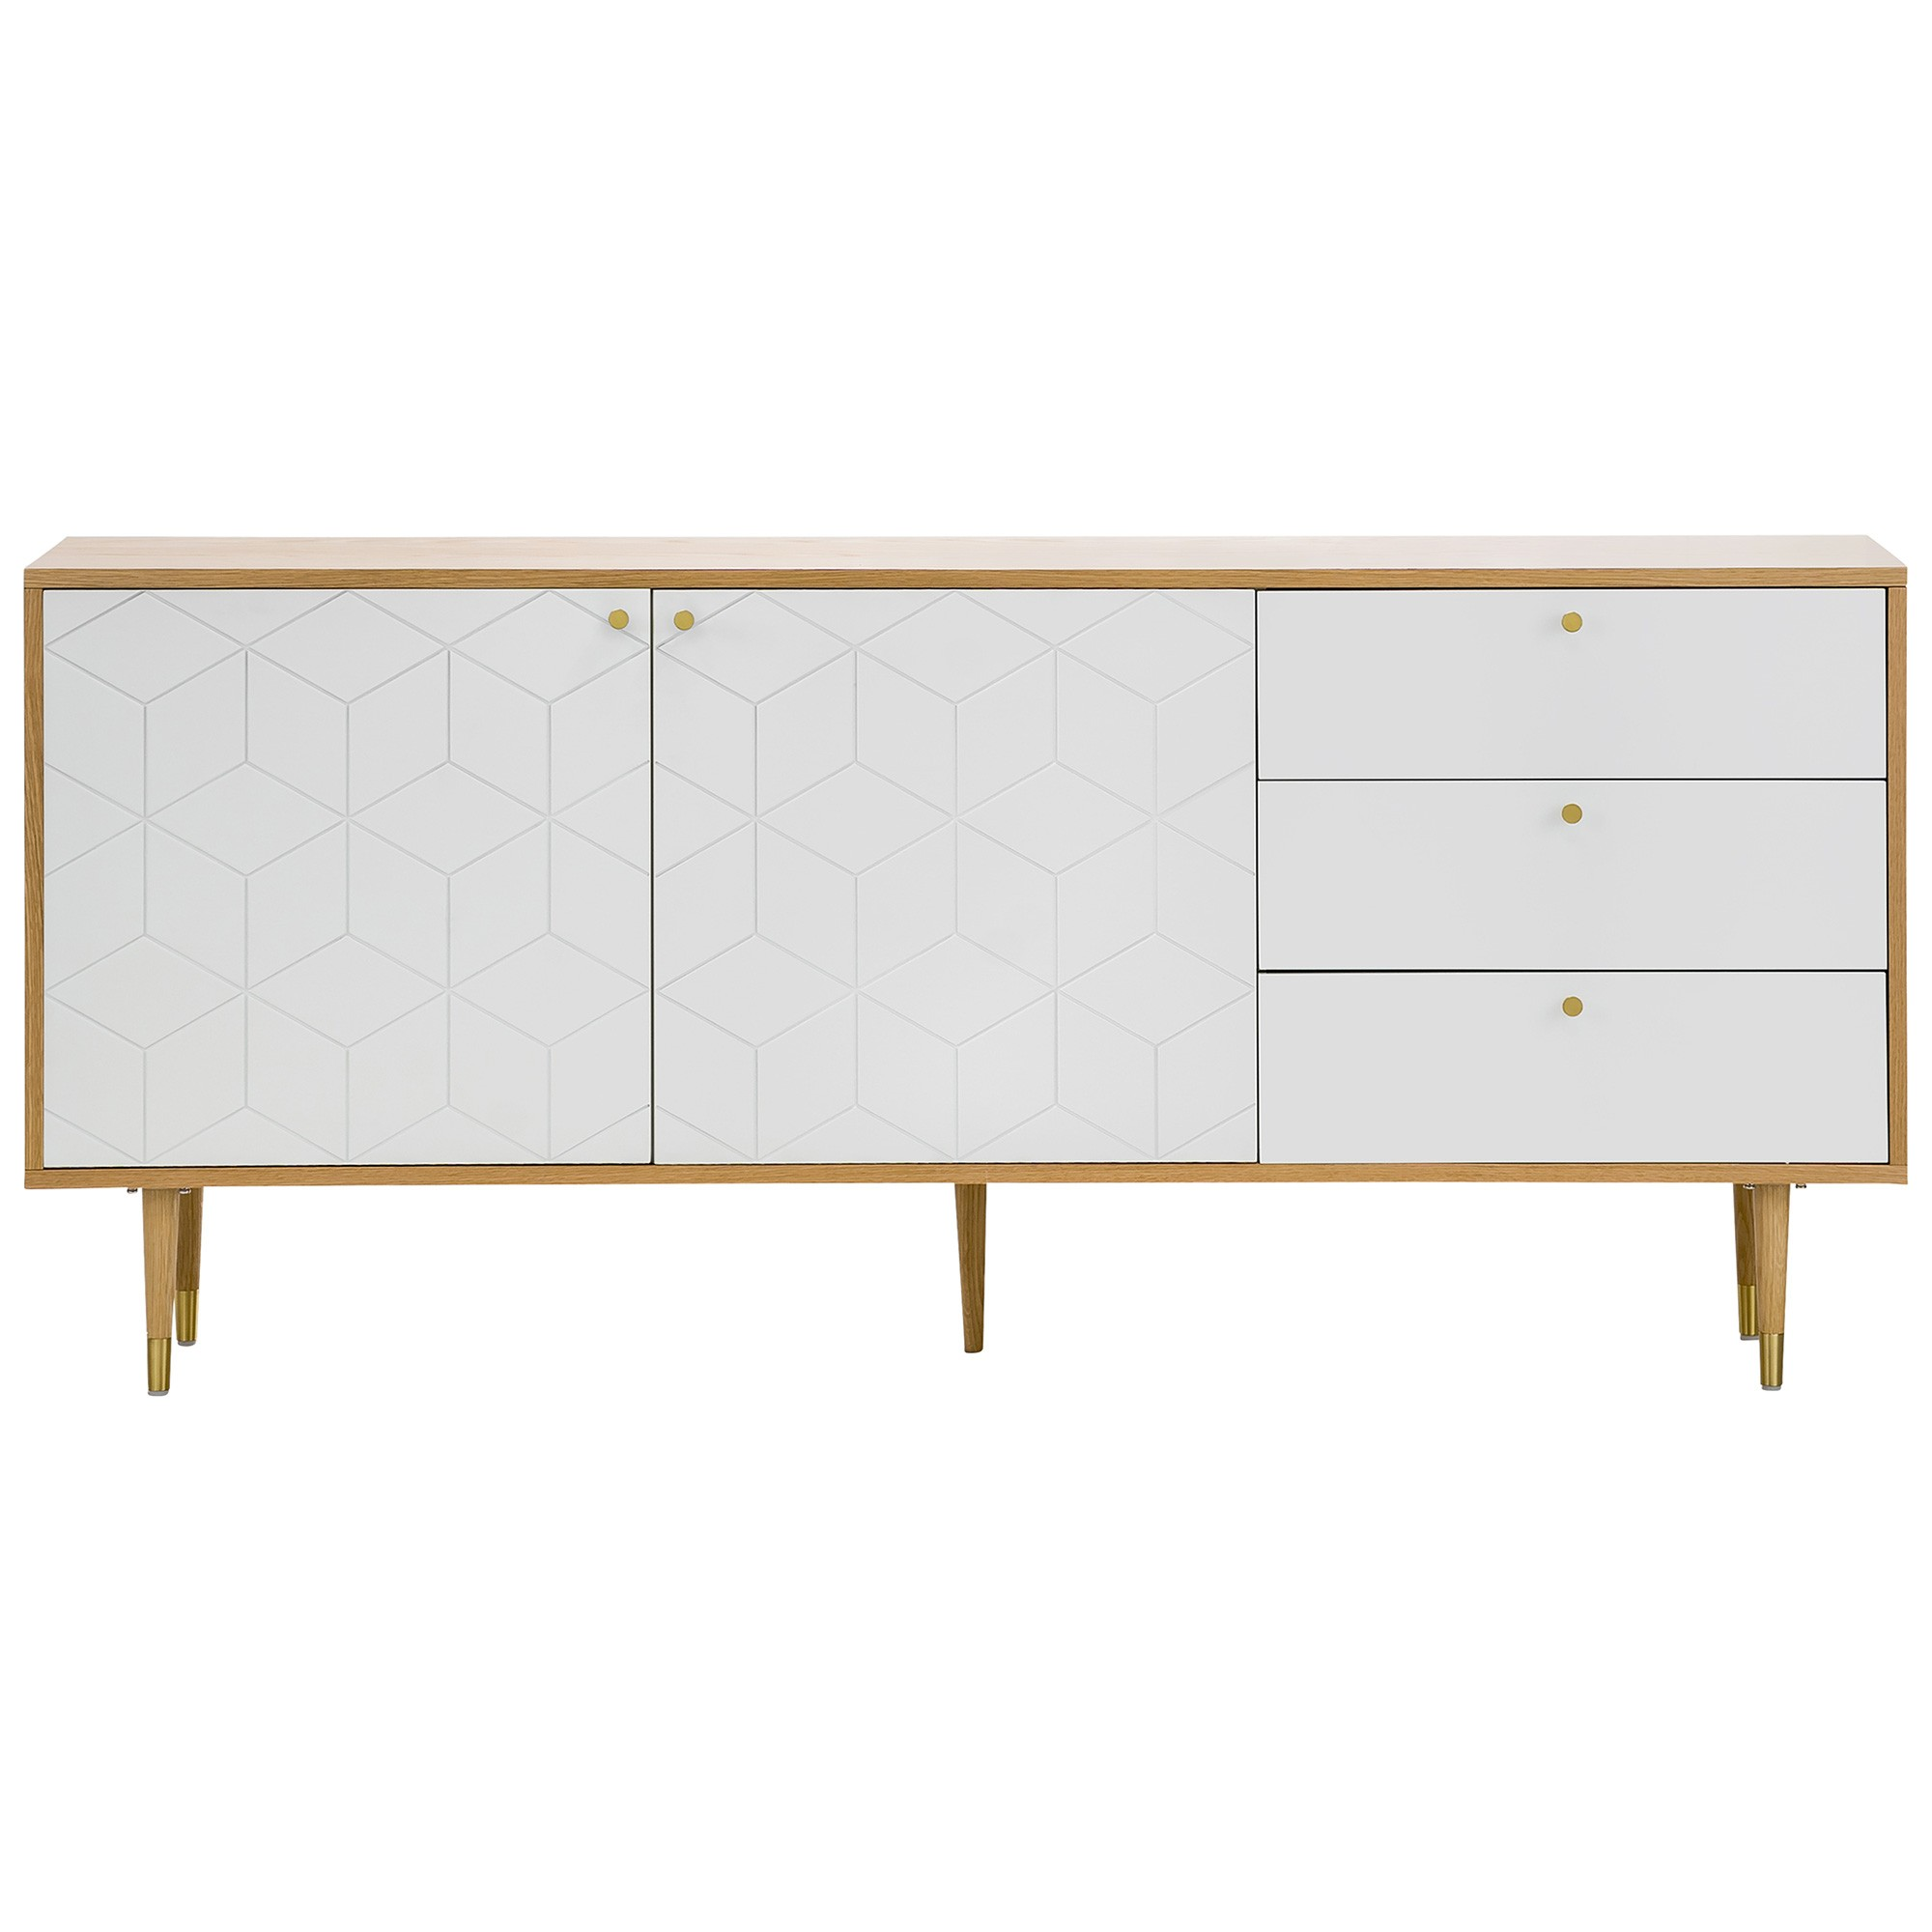 Hexii 2 Door 3 Drawer Sideboard, 180cm, Oak / White